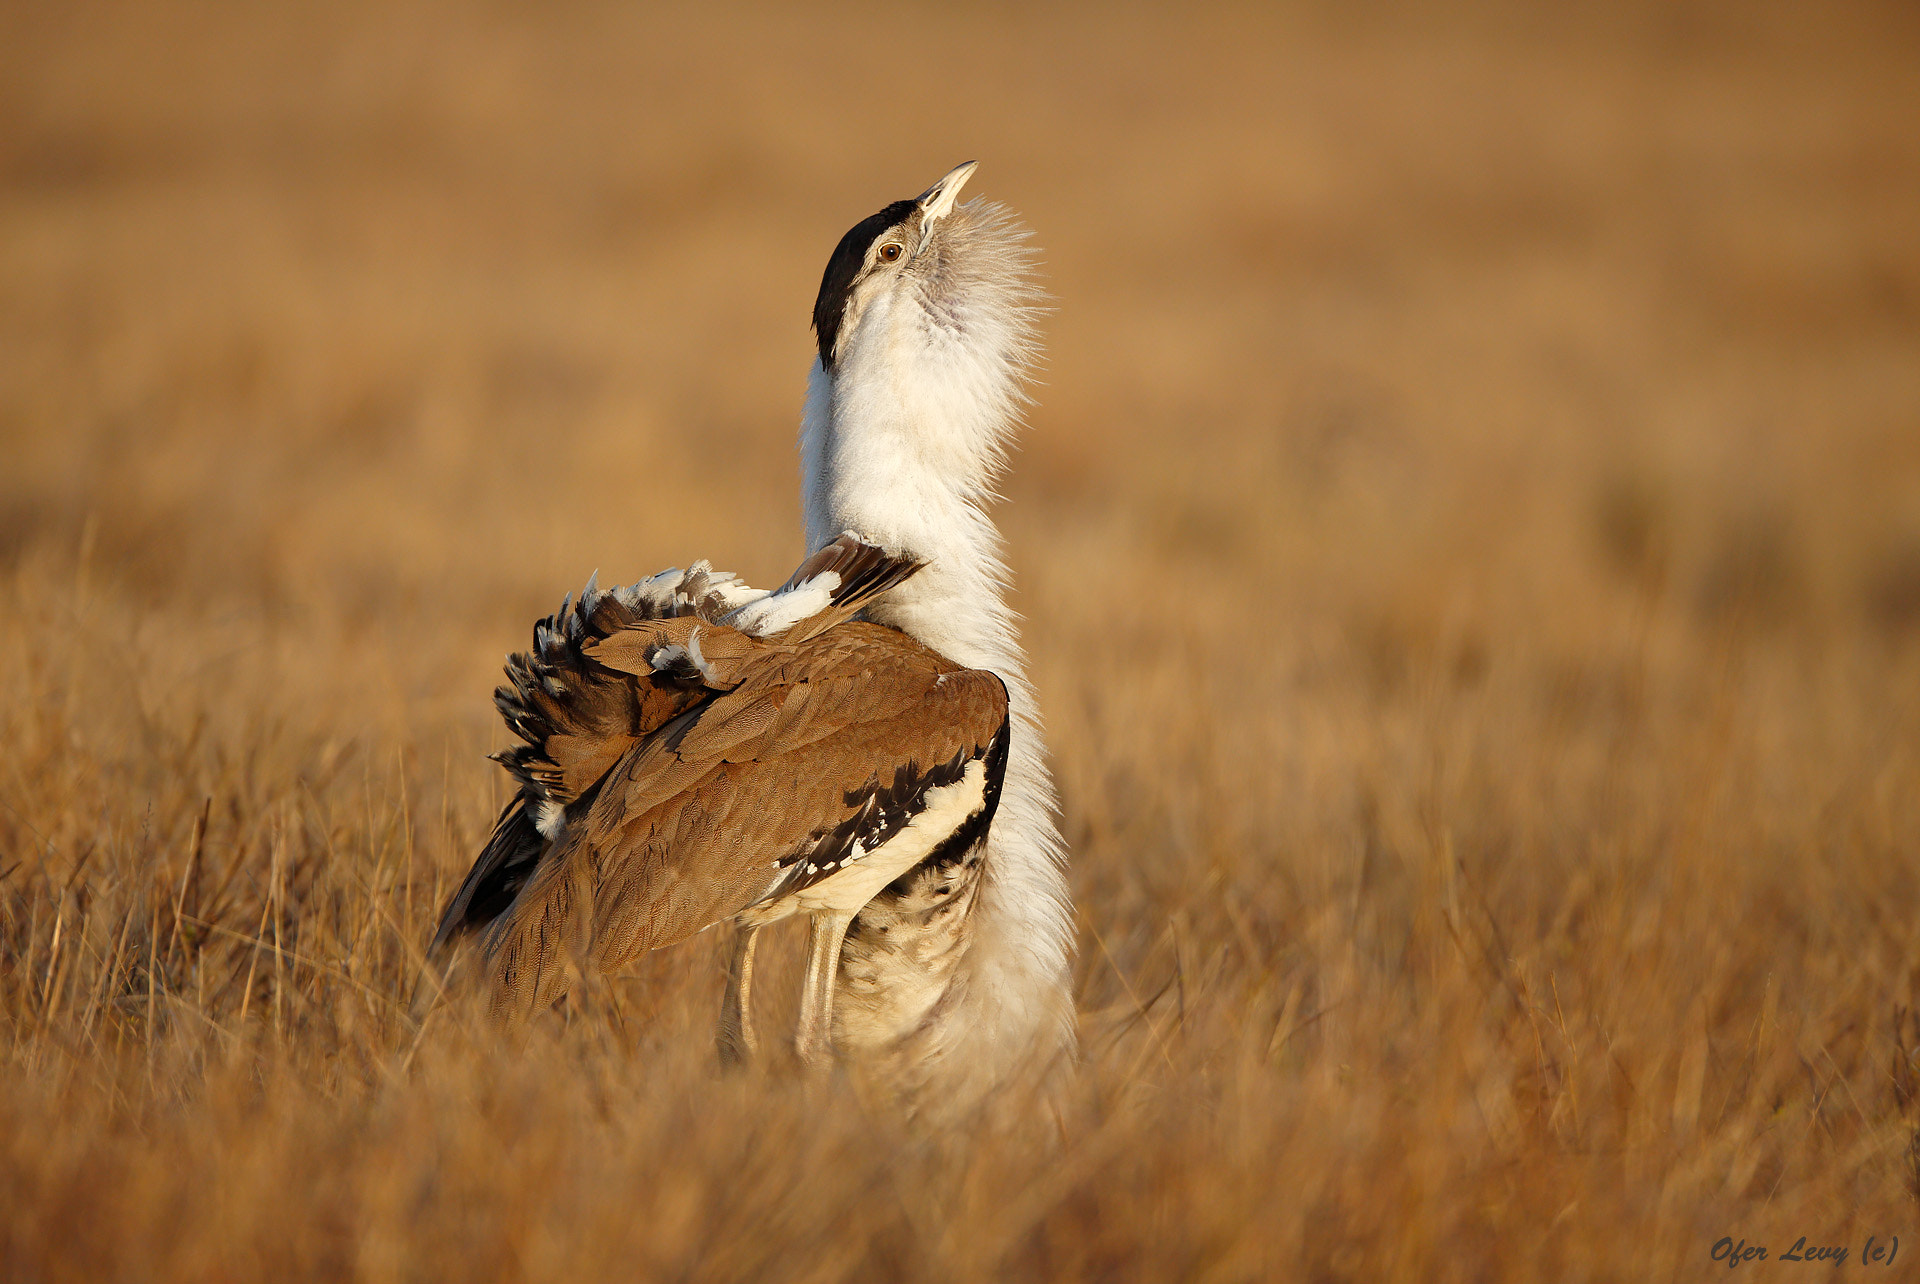 Photograph Australian Bustard - male displaying by Ofer Levy on 500px